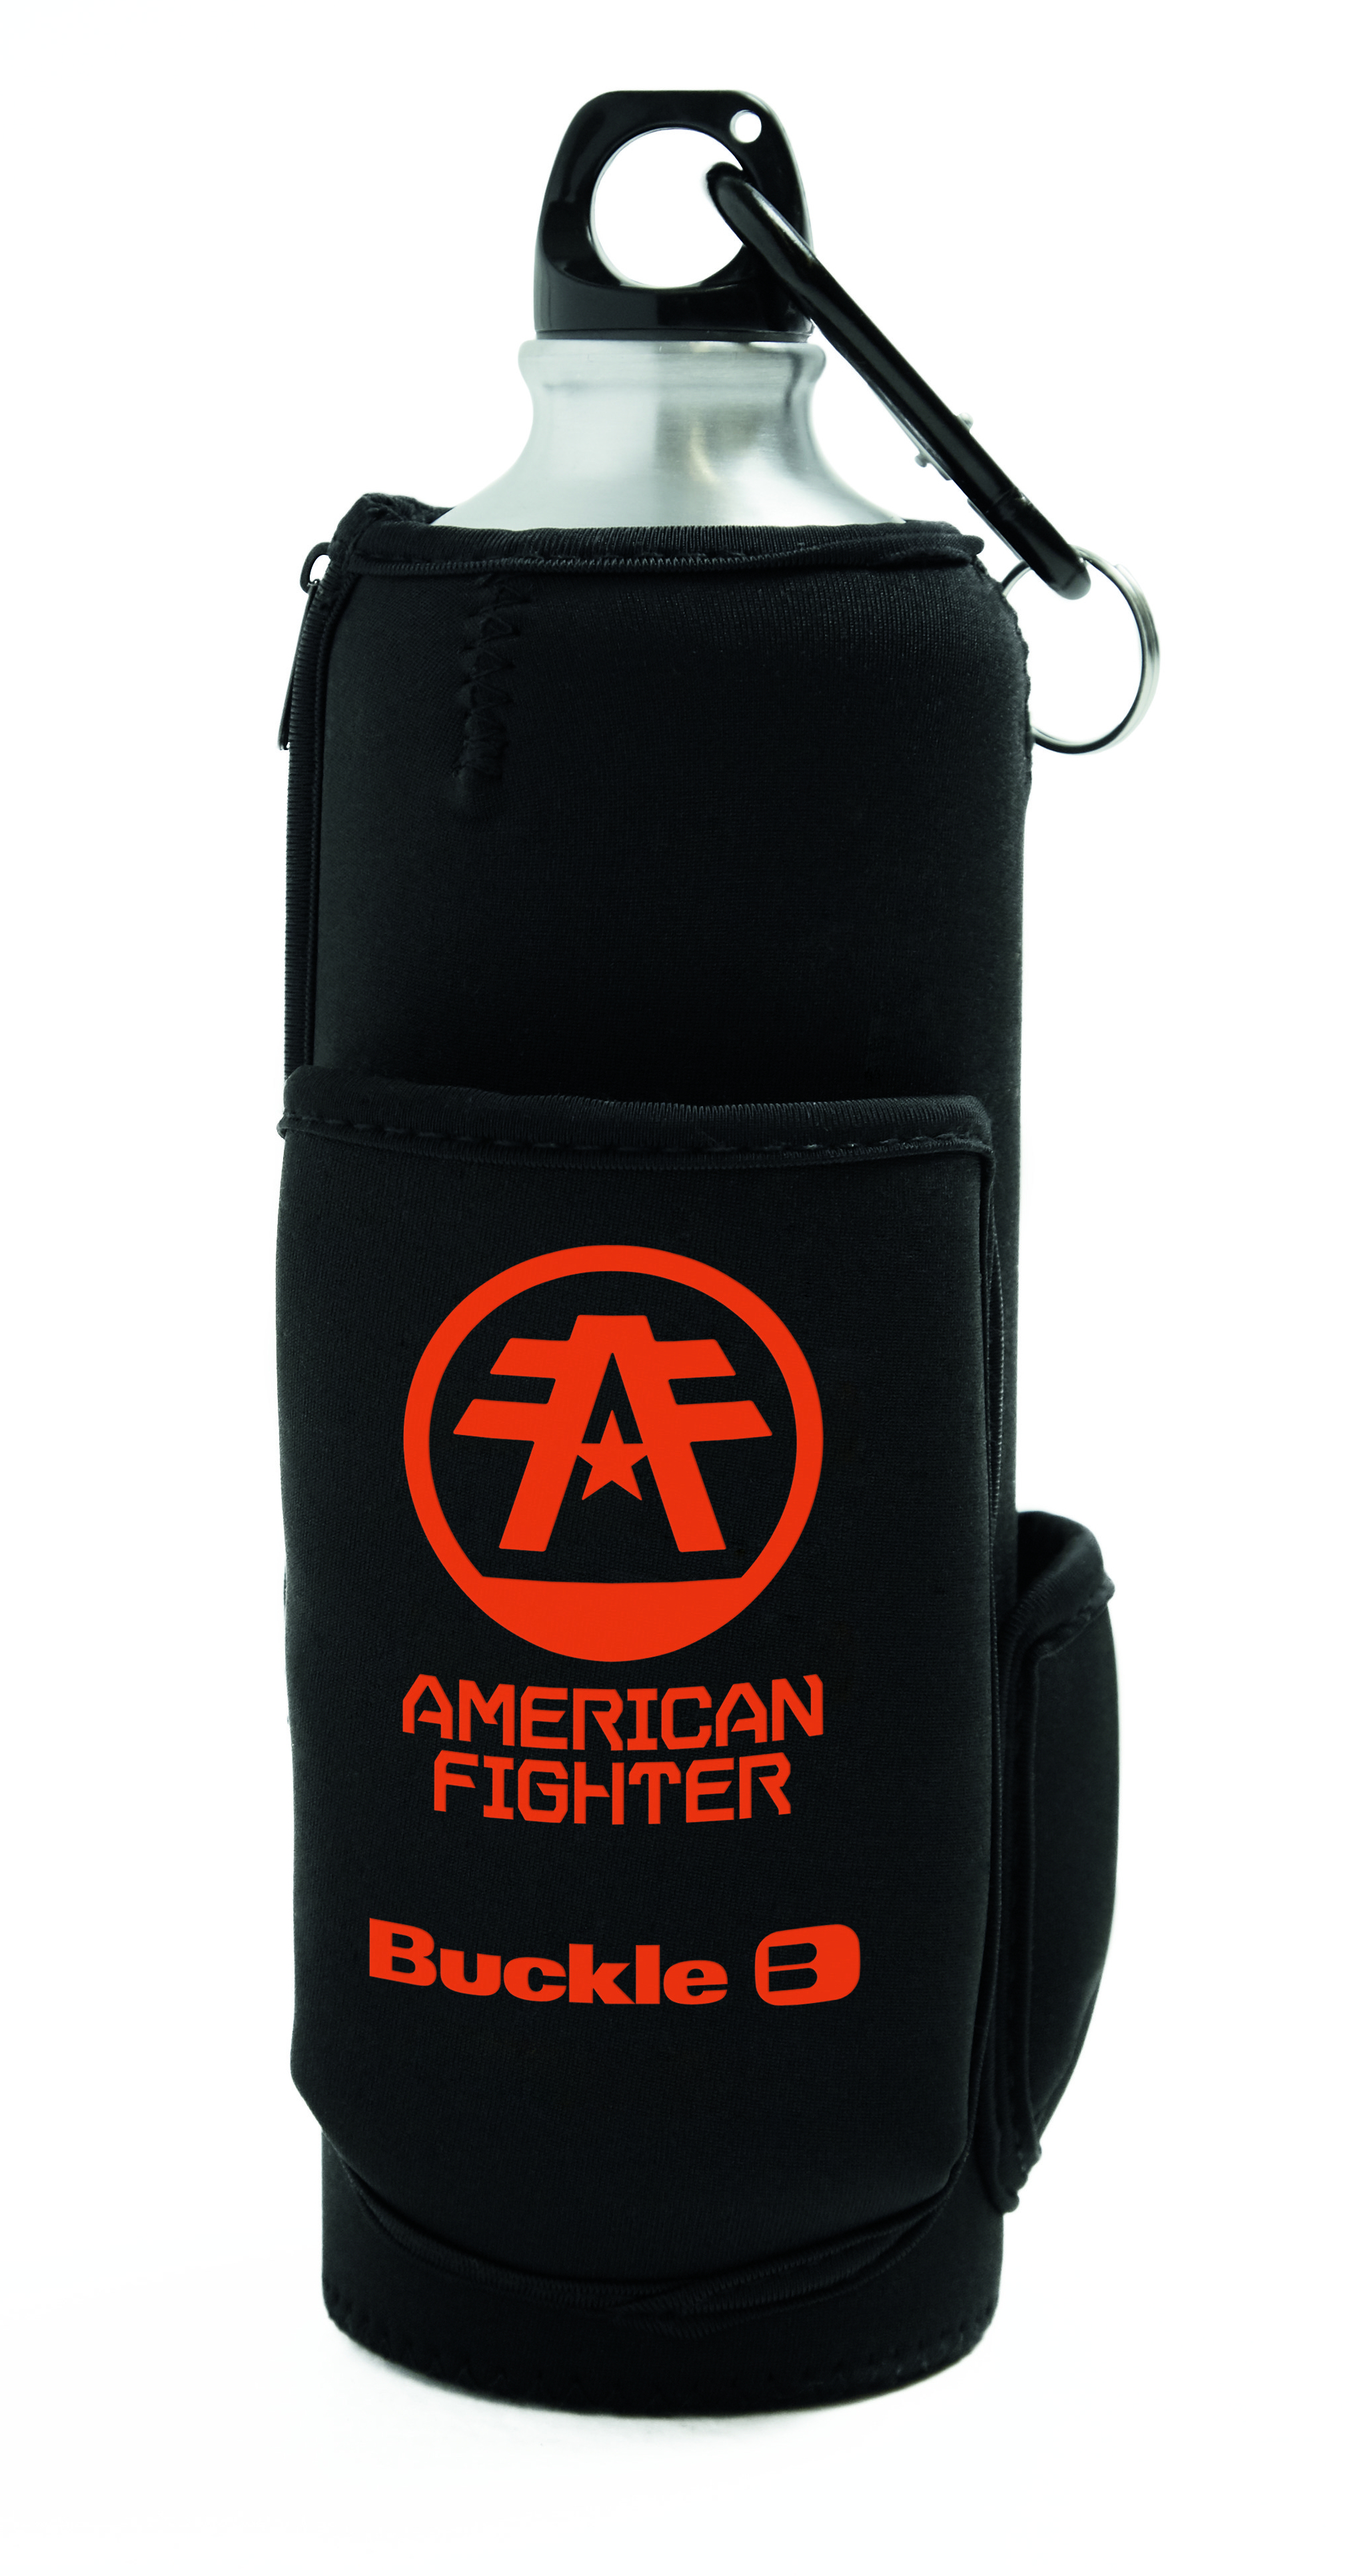 Buckle Brand Event - American Fighter Water Bottle